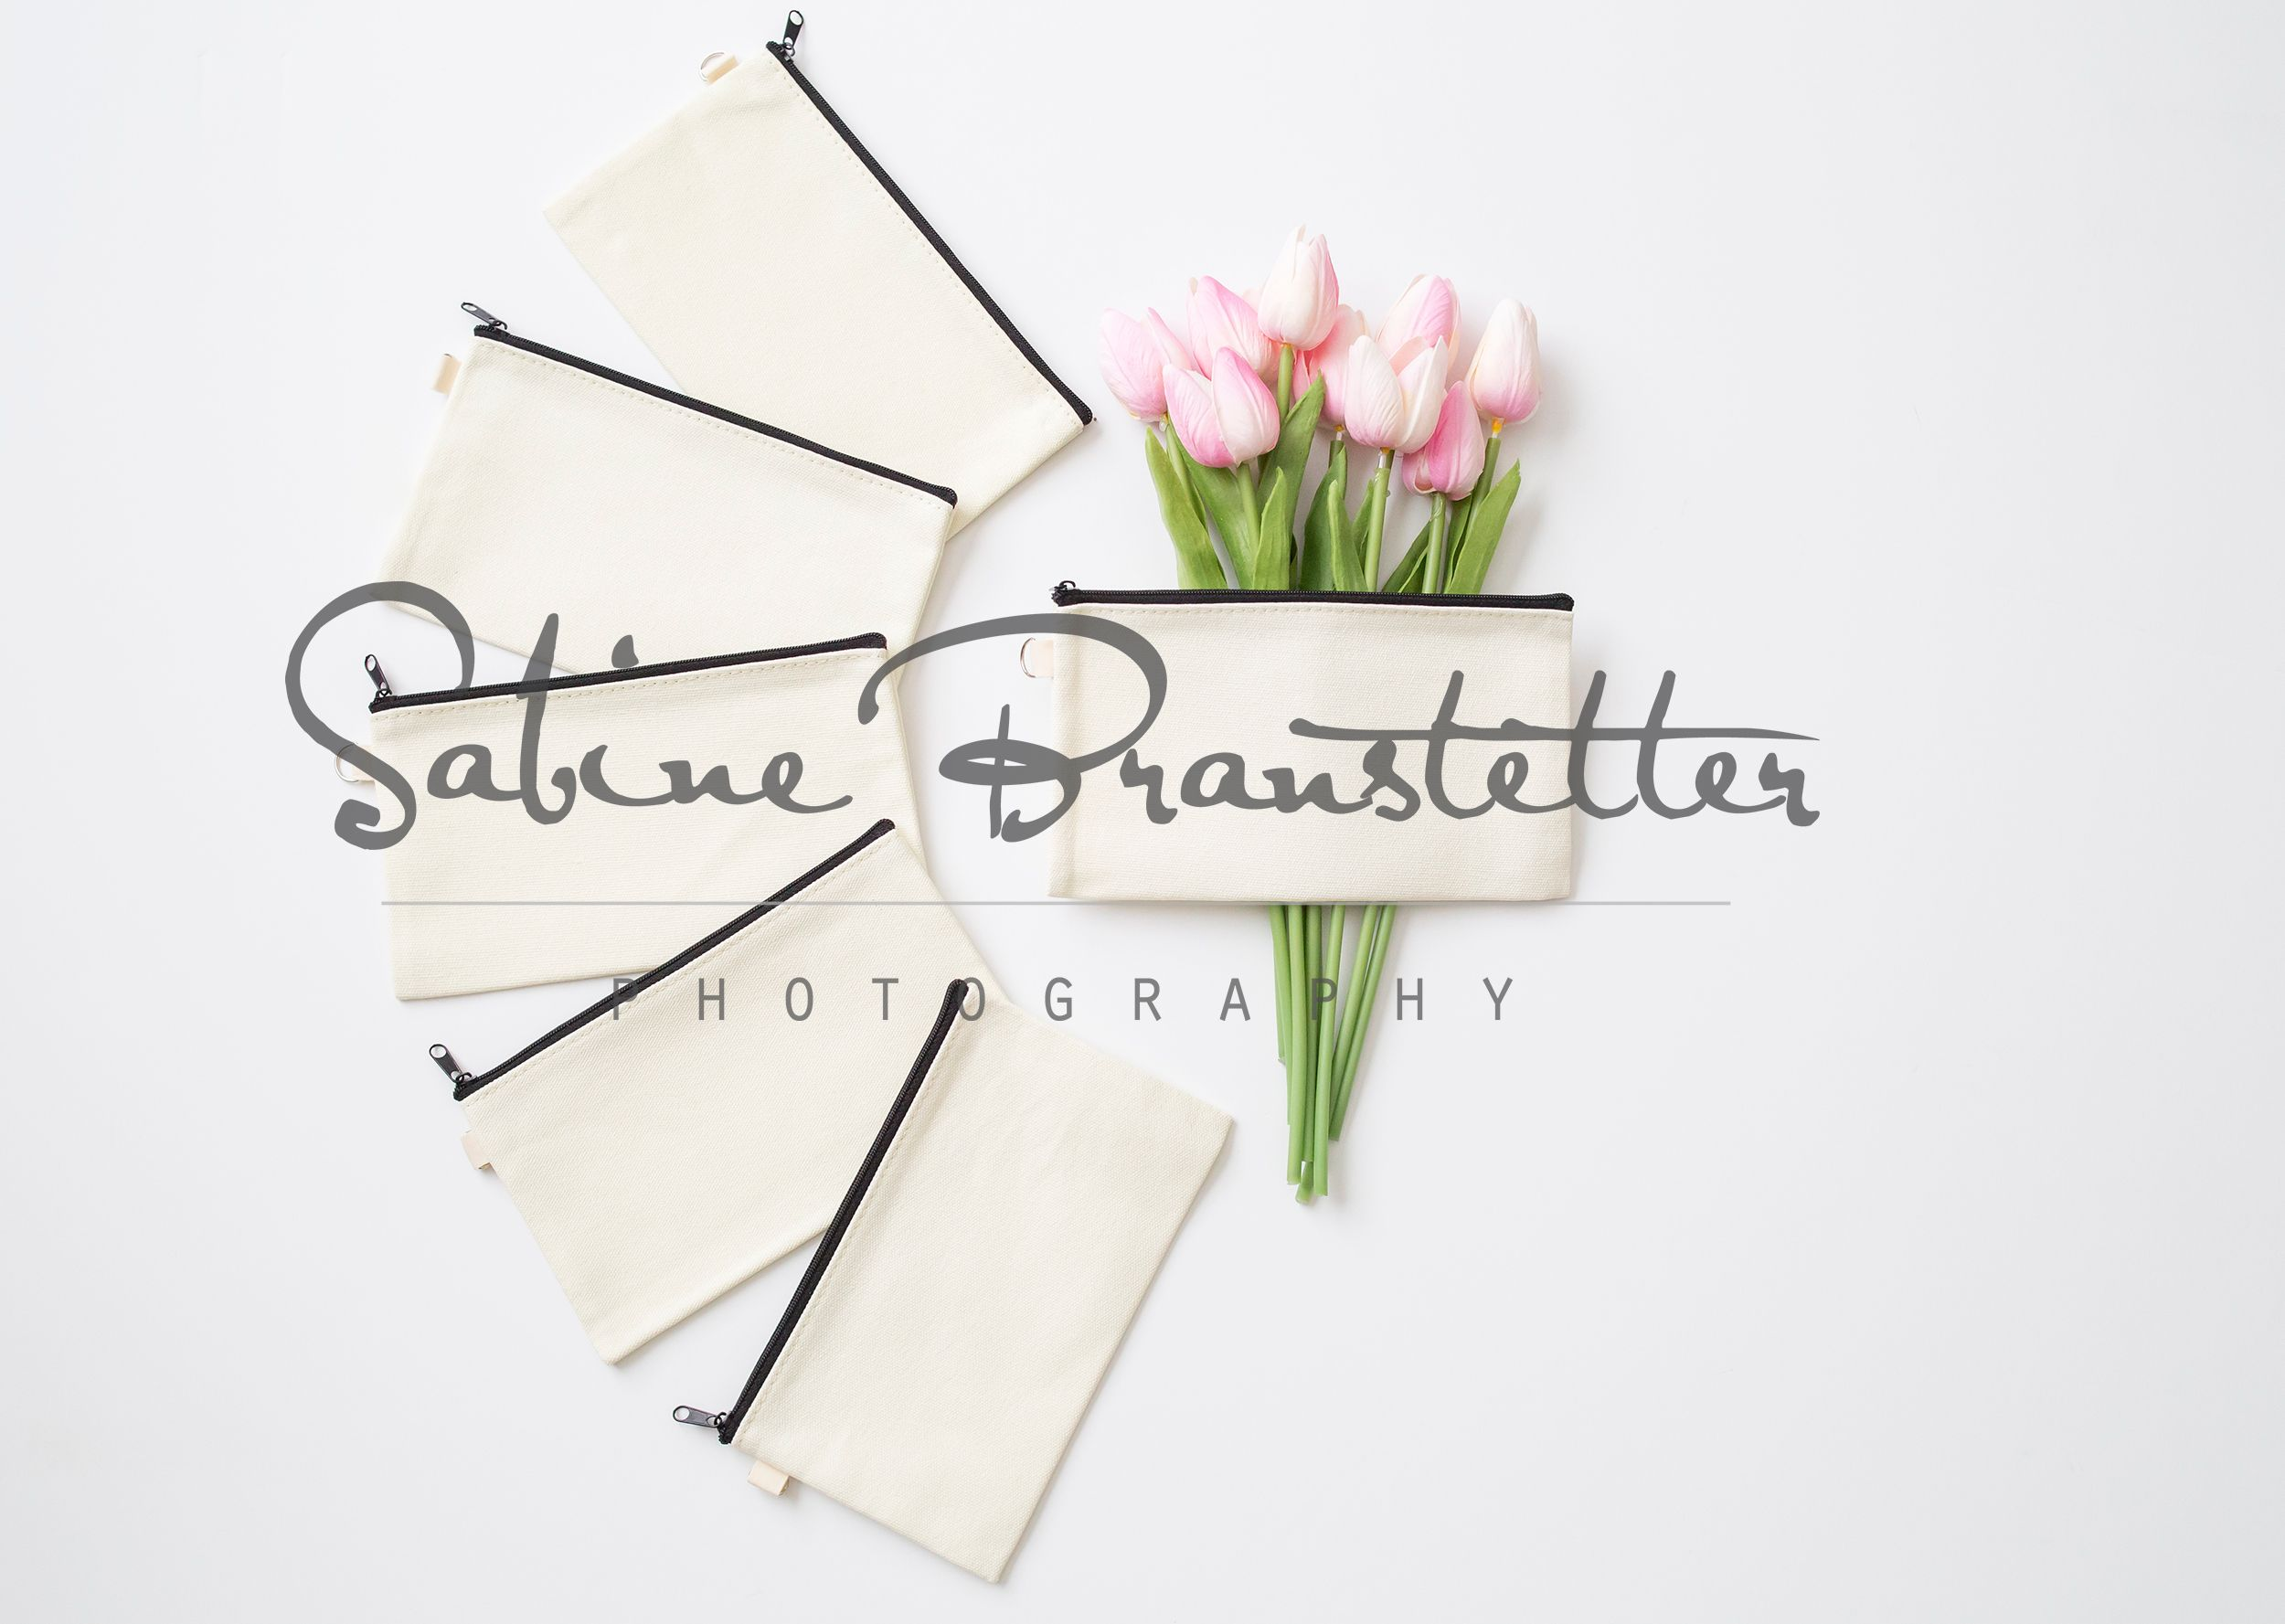 Download Styled Stock Photography Pretty Bride Mockup Digital File Bride And Bridesmaides Makeup Bag Cosmetic Bag Mockup Styled Stock Photography Free Psd Mockups Templates Mockup Free Psd